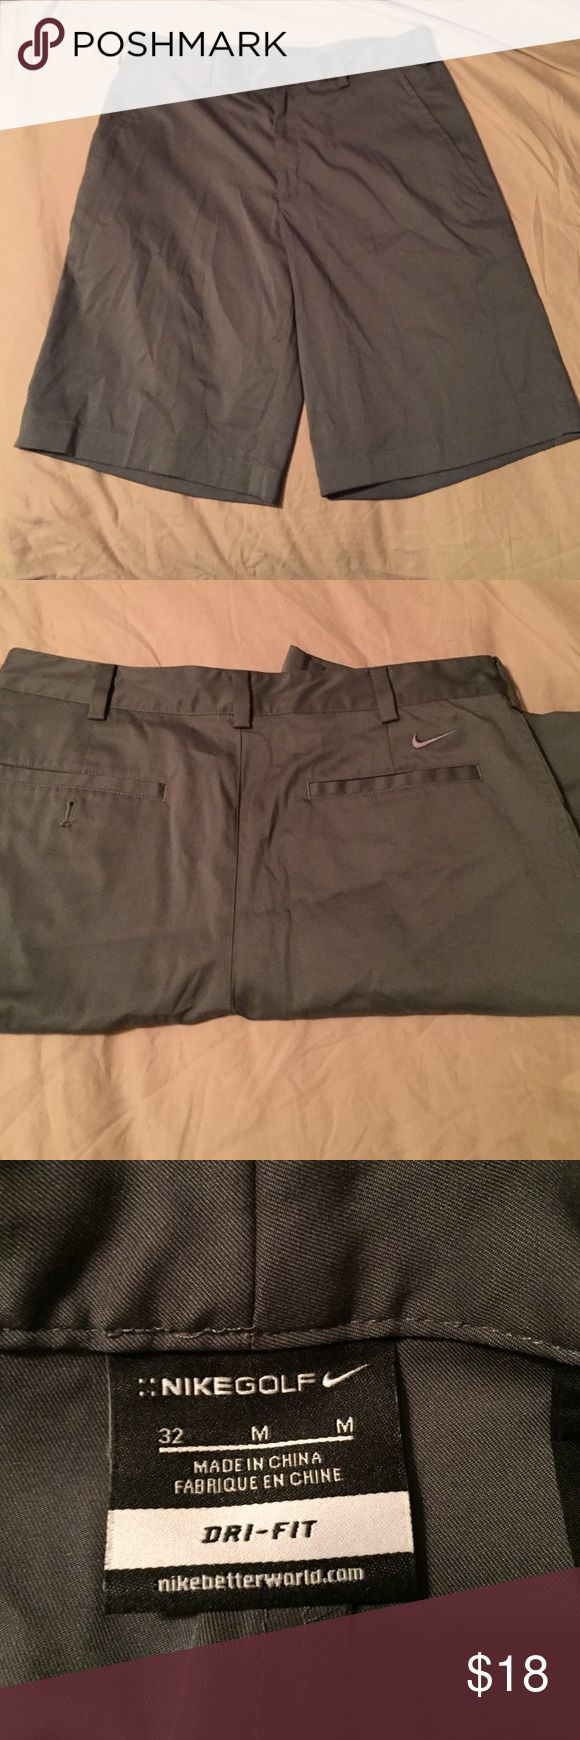 Nike dry fit shorts Gray, Nike dry fit men's shorts, great condition. Nike Shorts